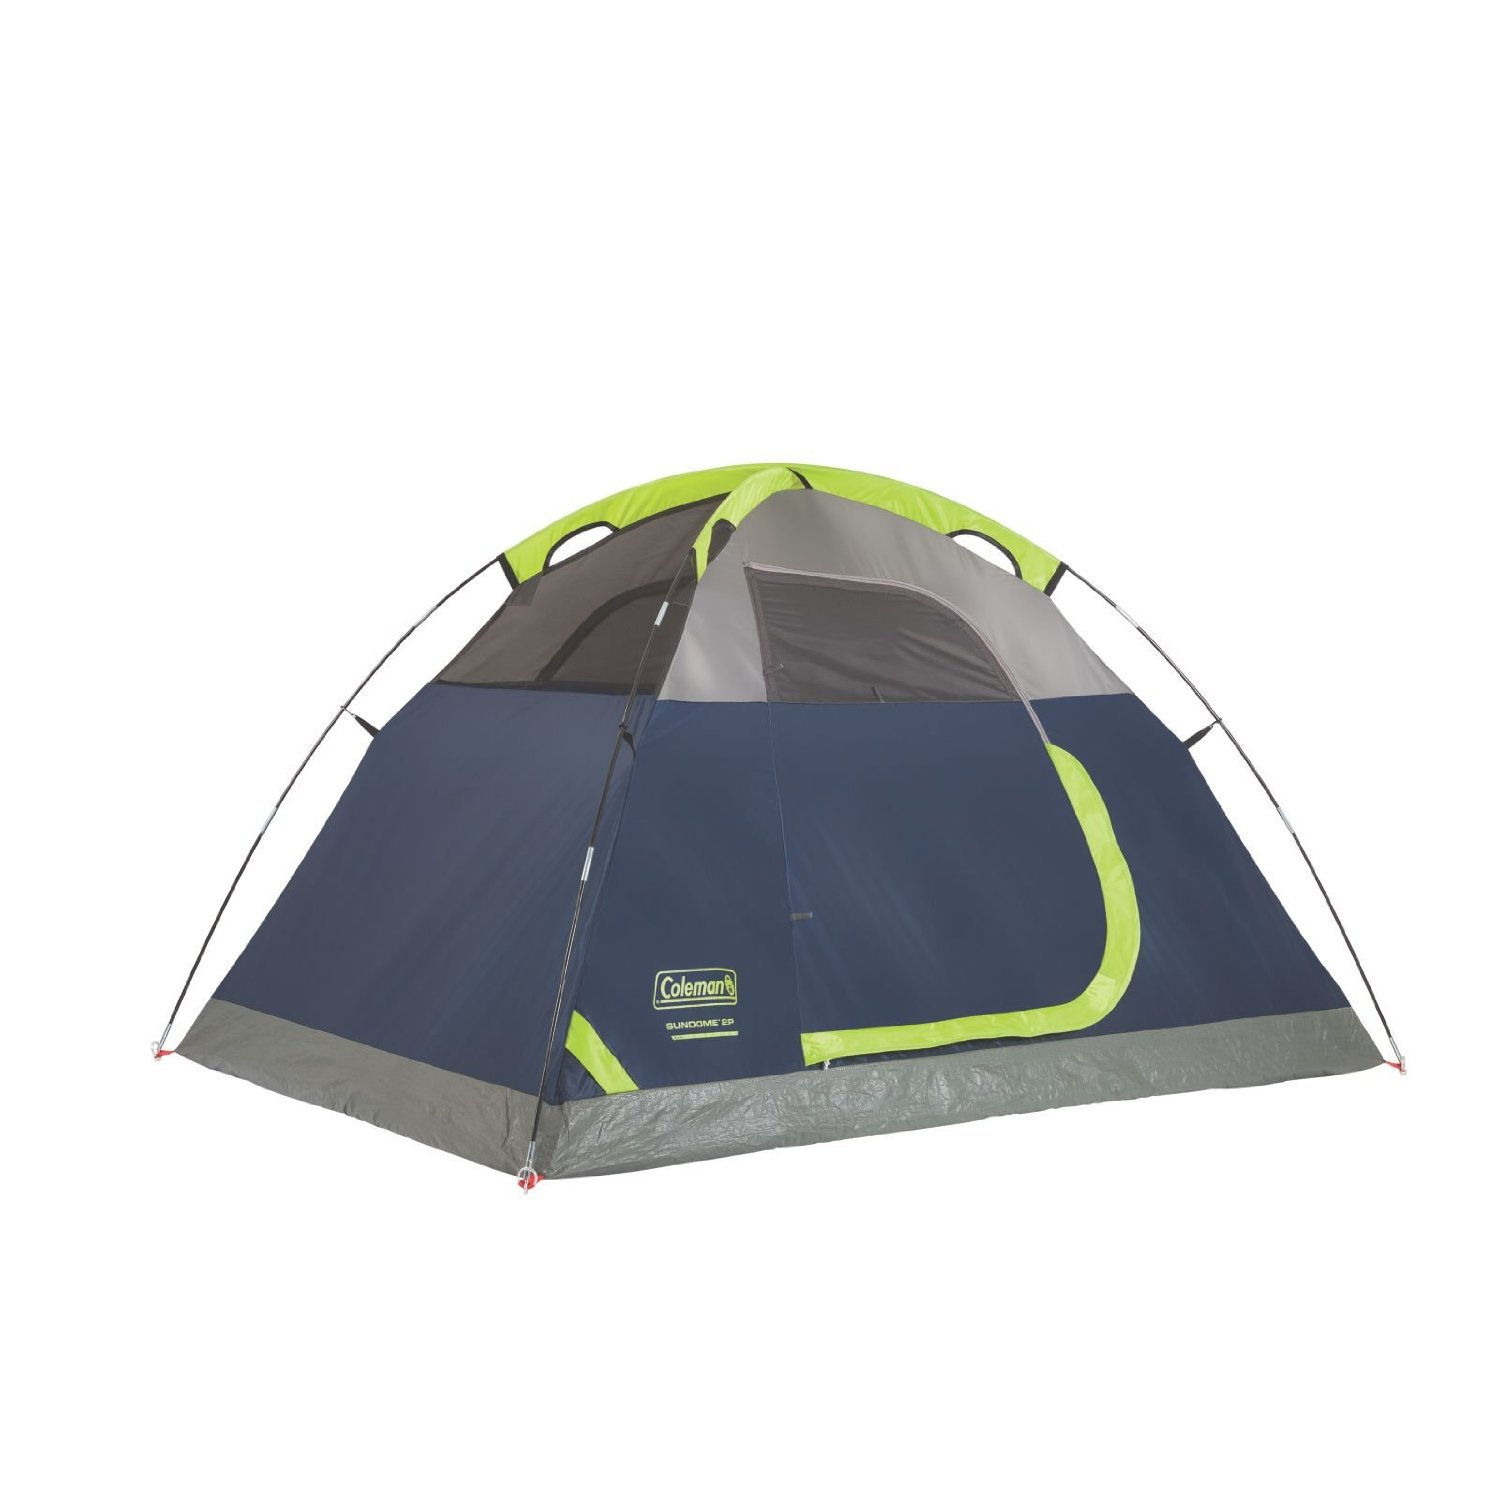 Coleman Sundome Two-Person Tent for Camping